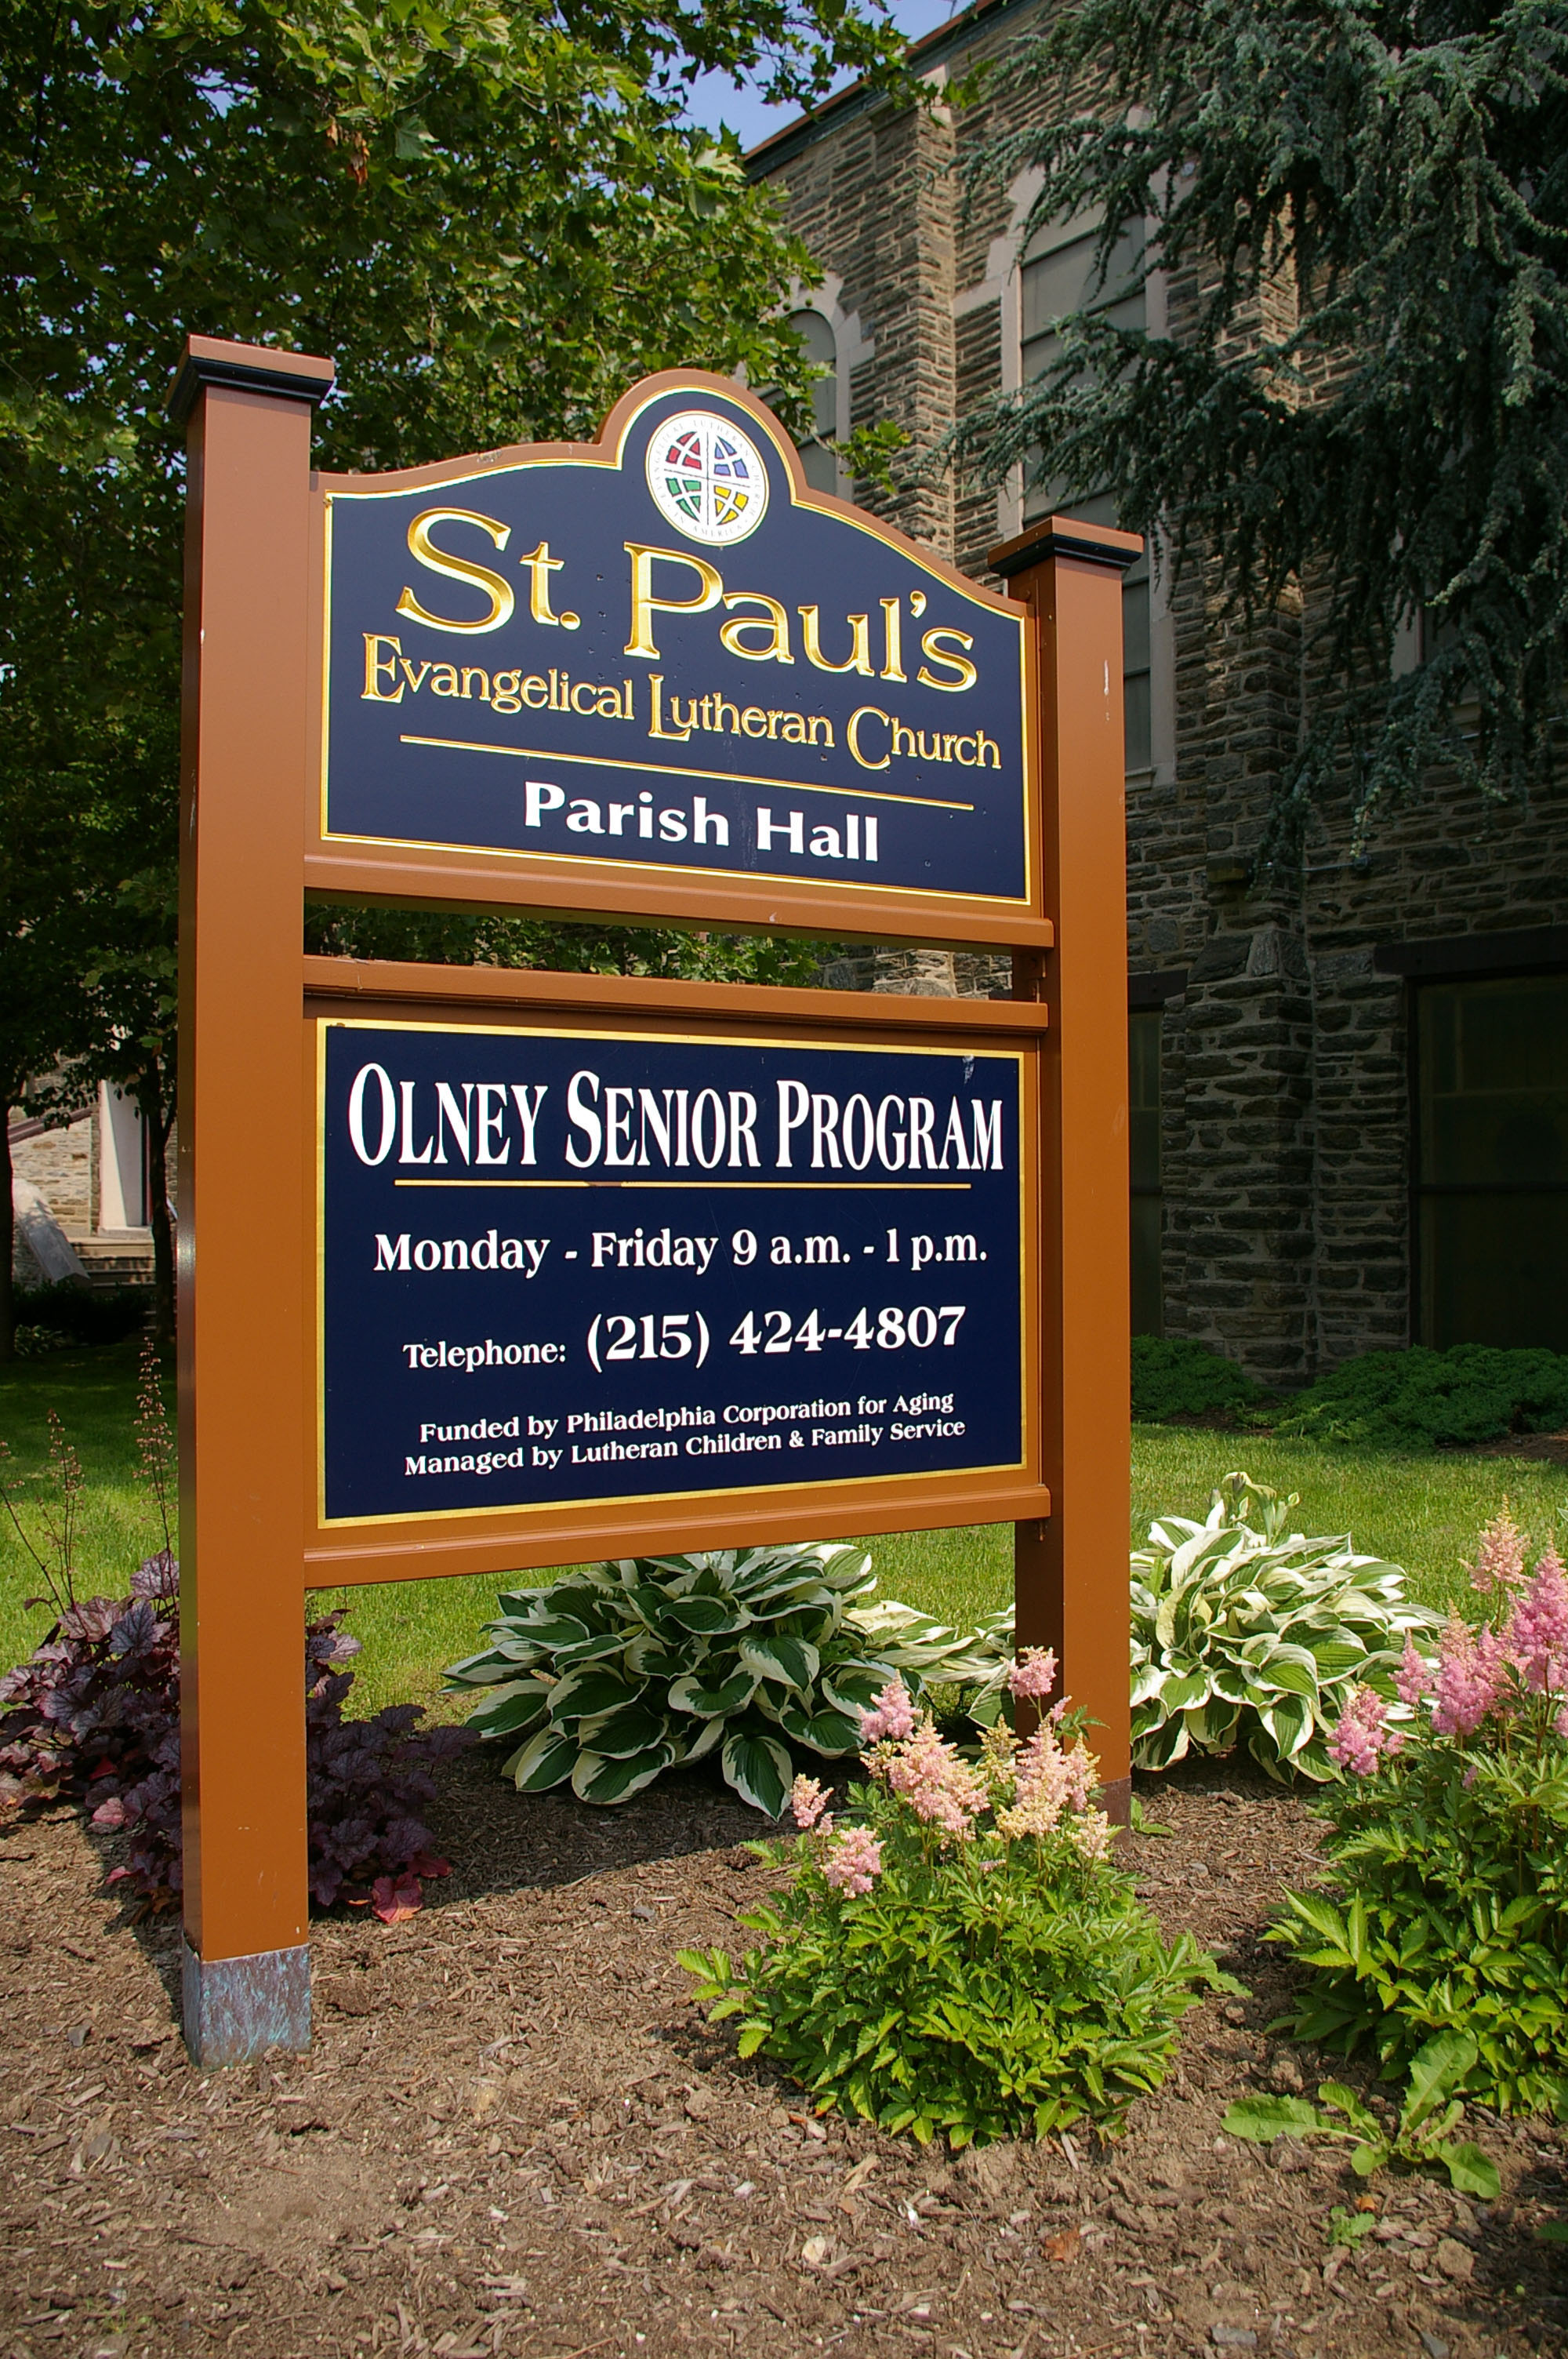 St. Paul's is home to the only emergency food kitchen in Olney.